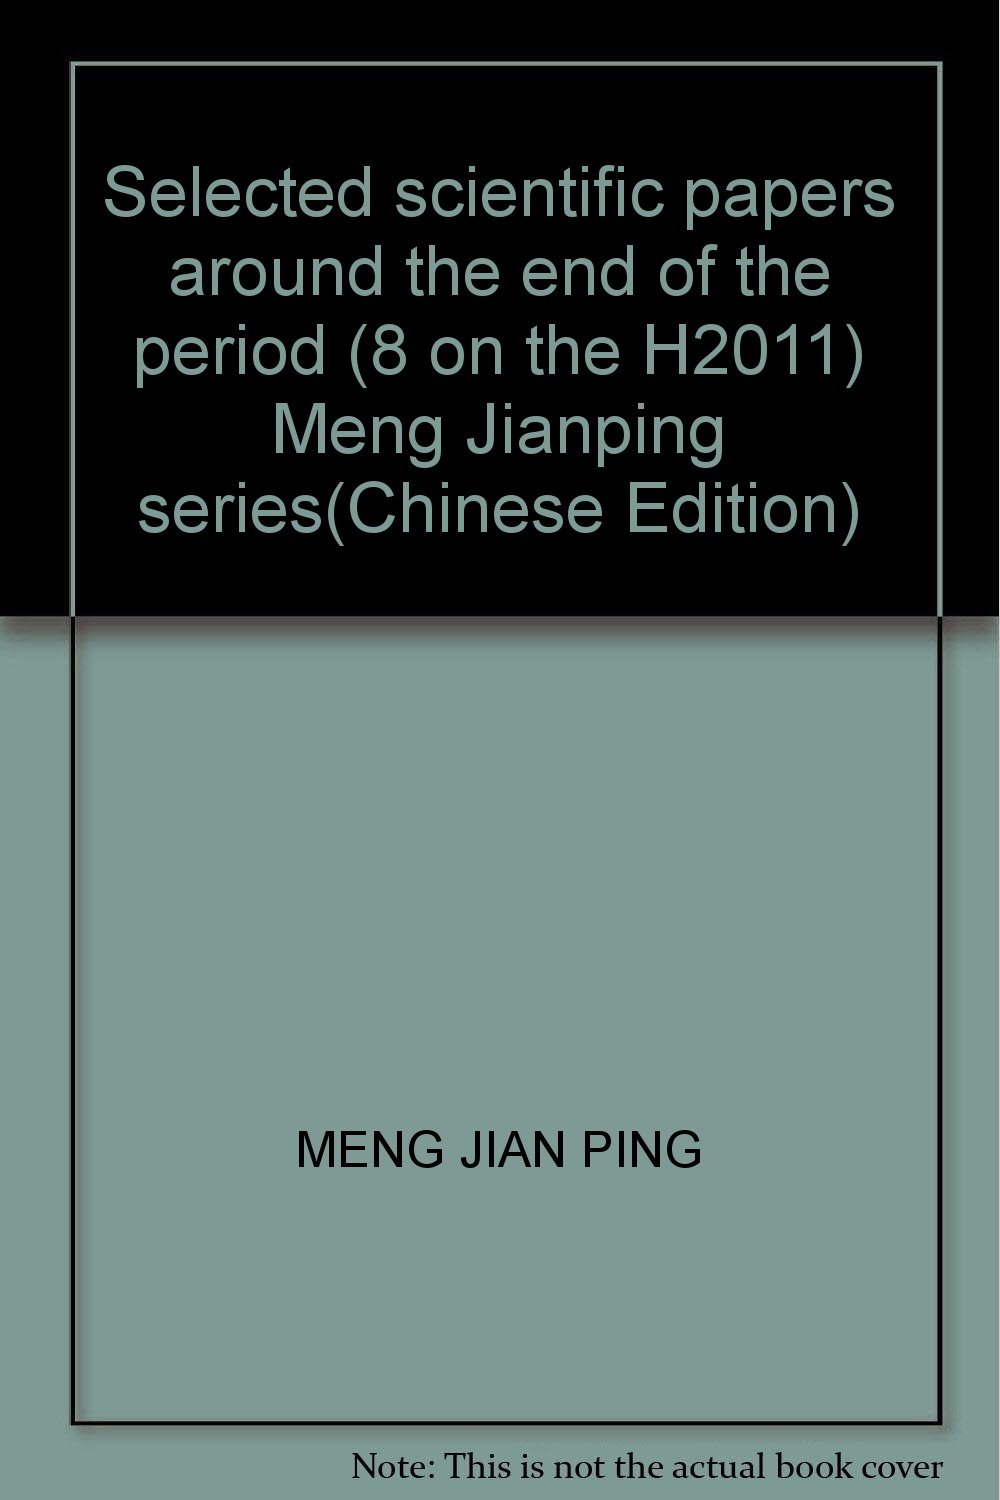 Download Selected scientific papers around the end of the period (8 on the H2011) Meng Jianping series(Chinese Edition) pdf